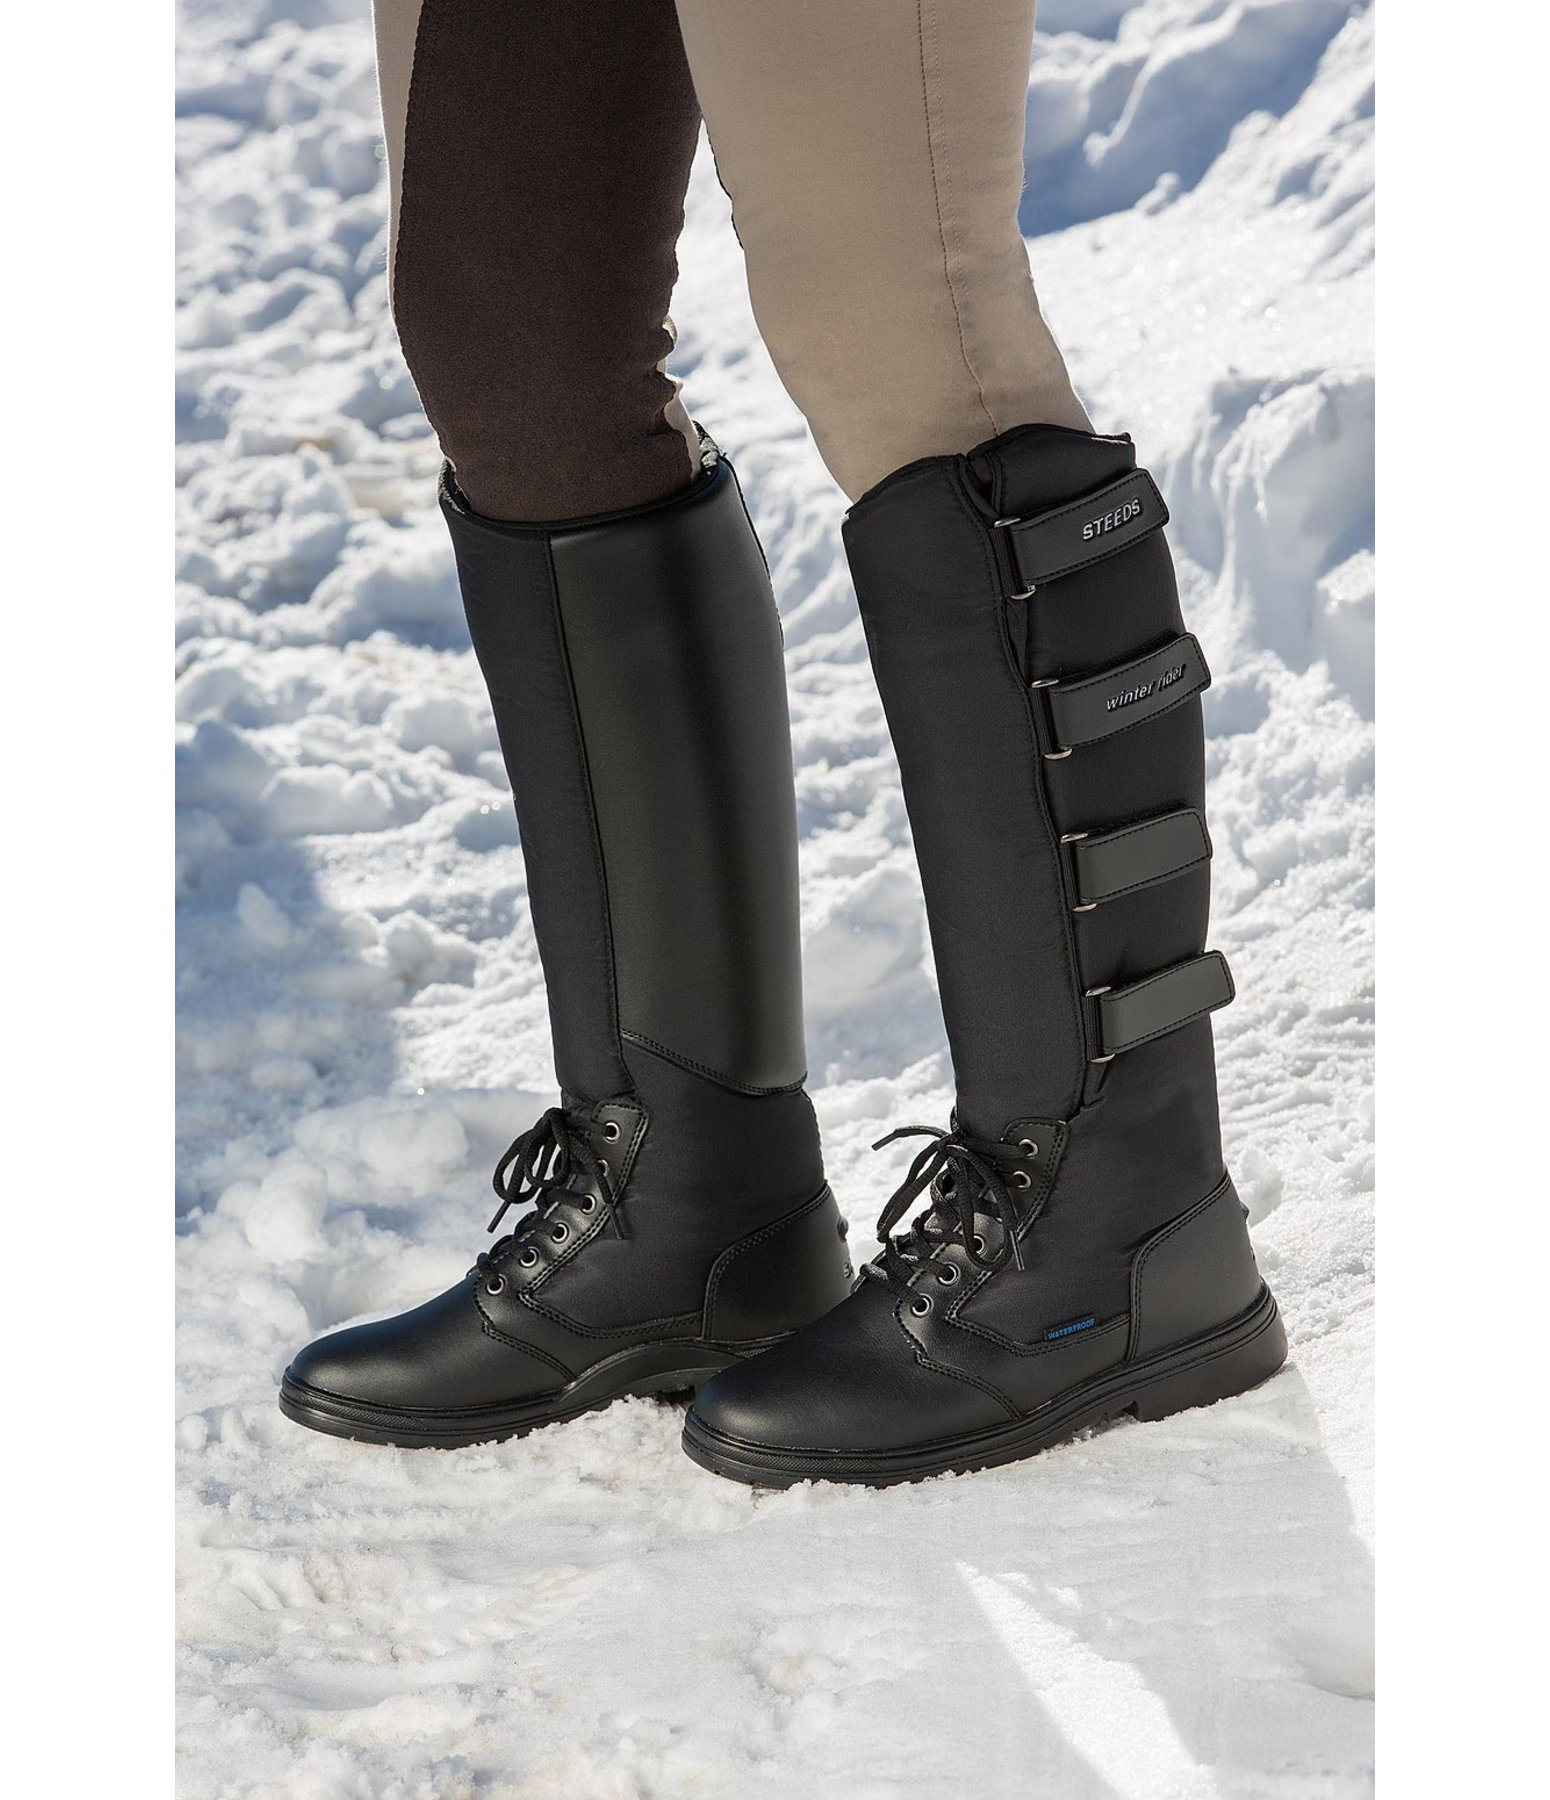 705ae6b65ae Long Thermal Riding Boots Winter Rider - Long Winter Riding Boots .